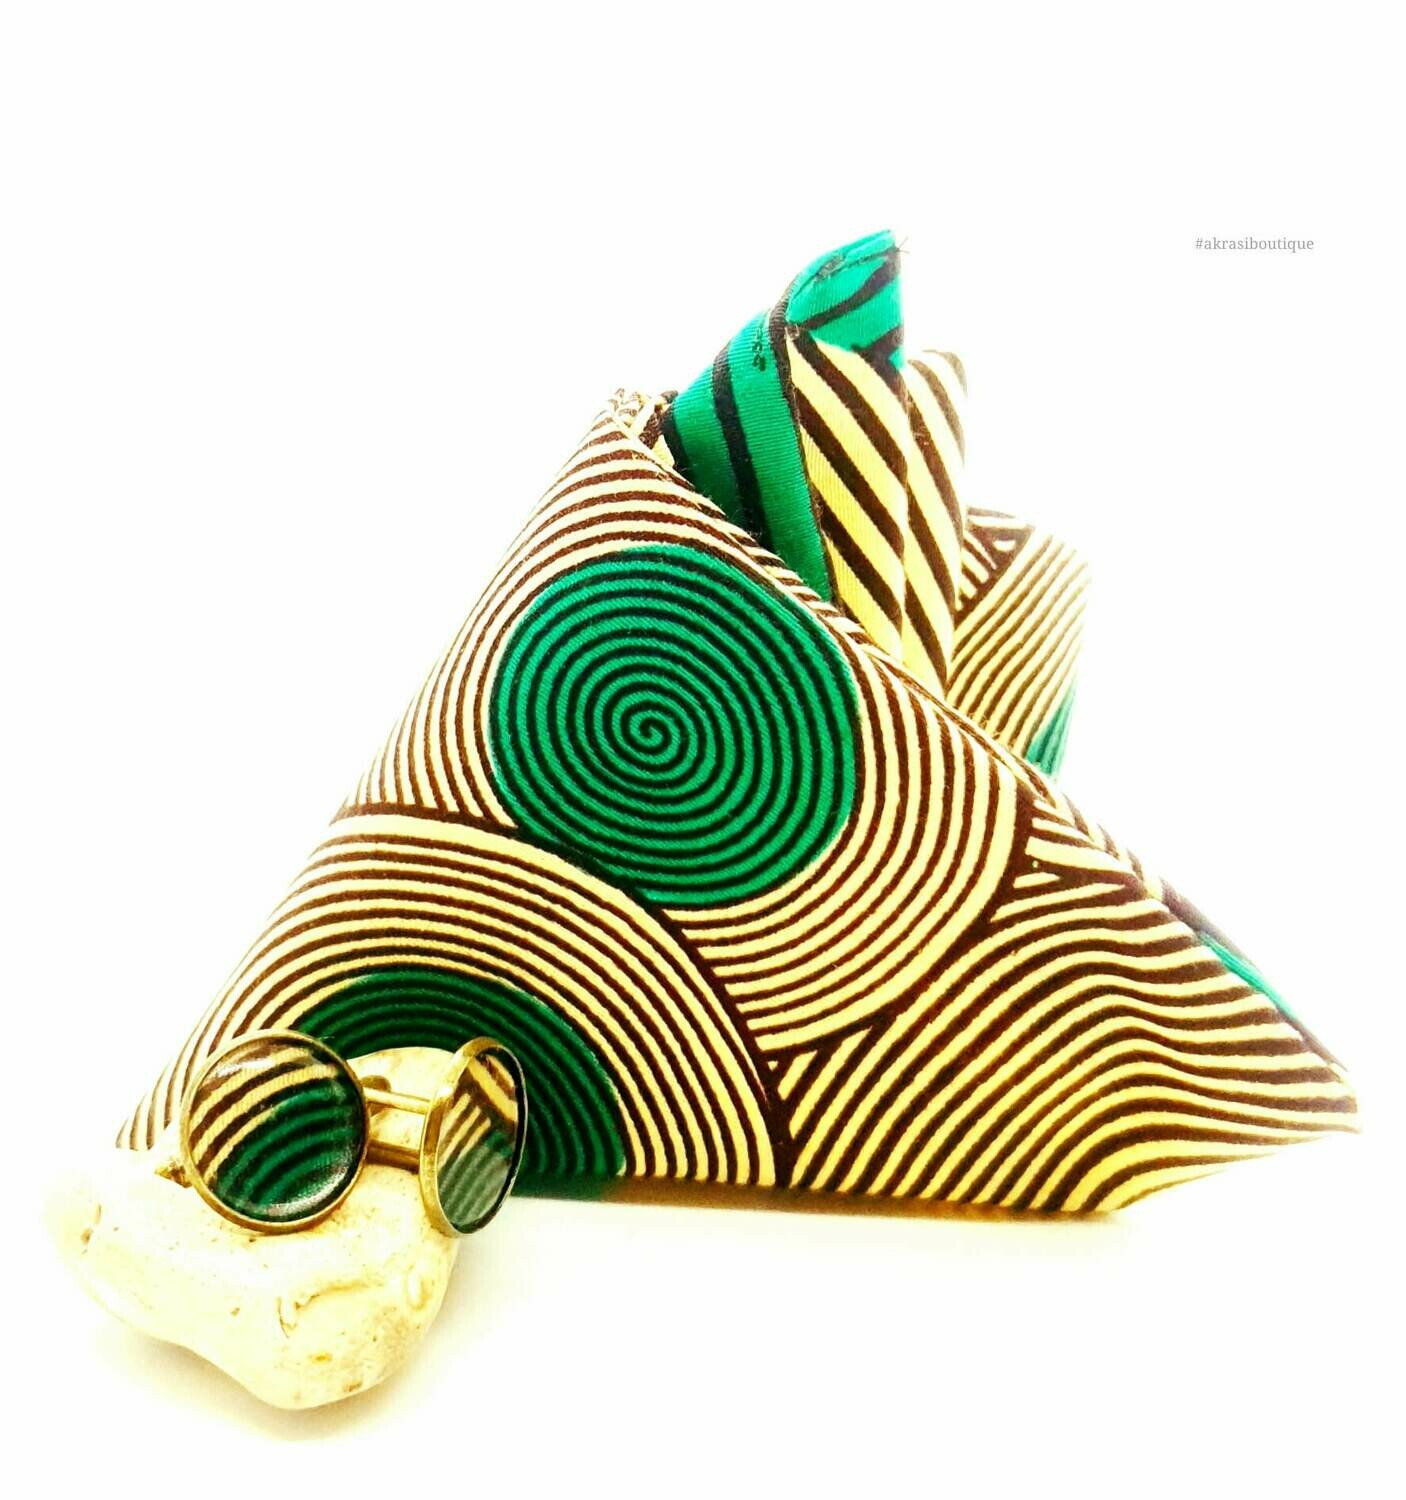 African print cream, green and brown pocket square with bronze cufflinks | men's accessories | Ankara pocket square